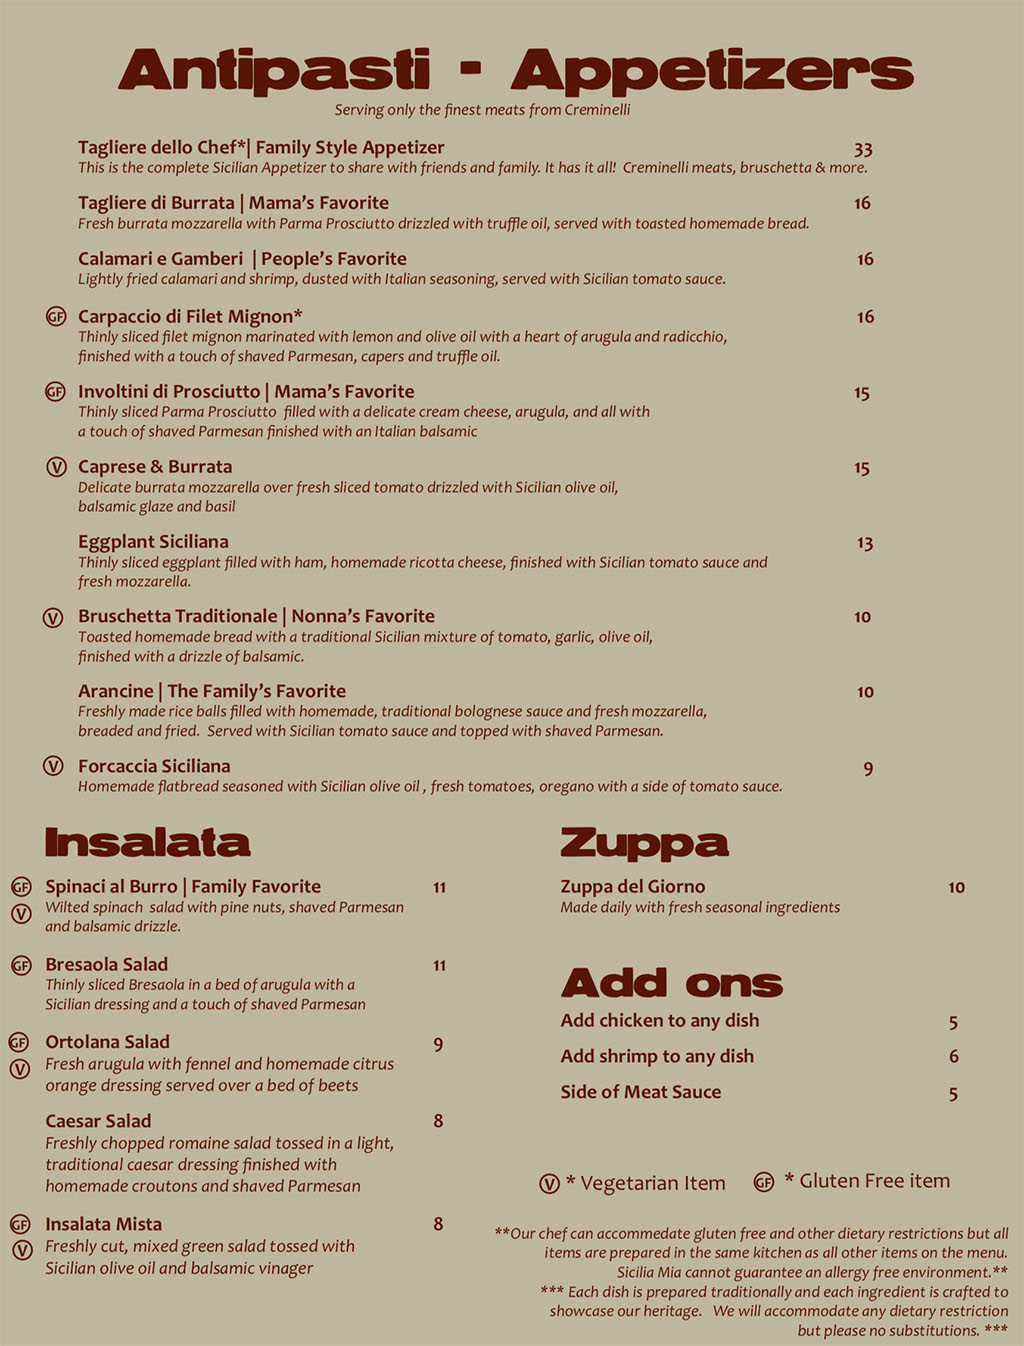 Sicilia Mia menu - appetizers, soup, salad, add ons